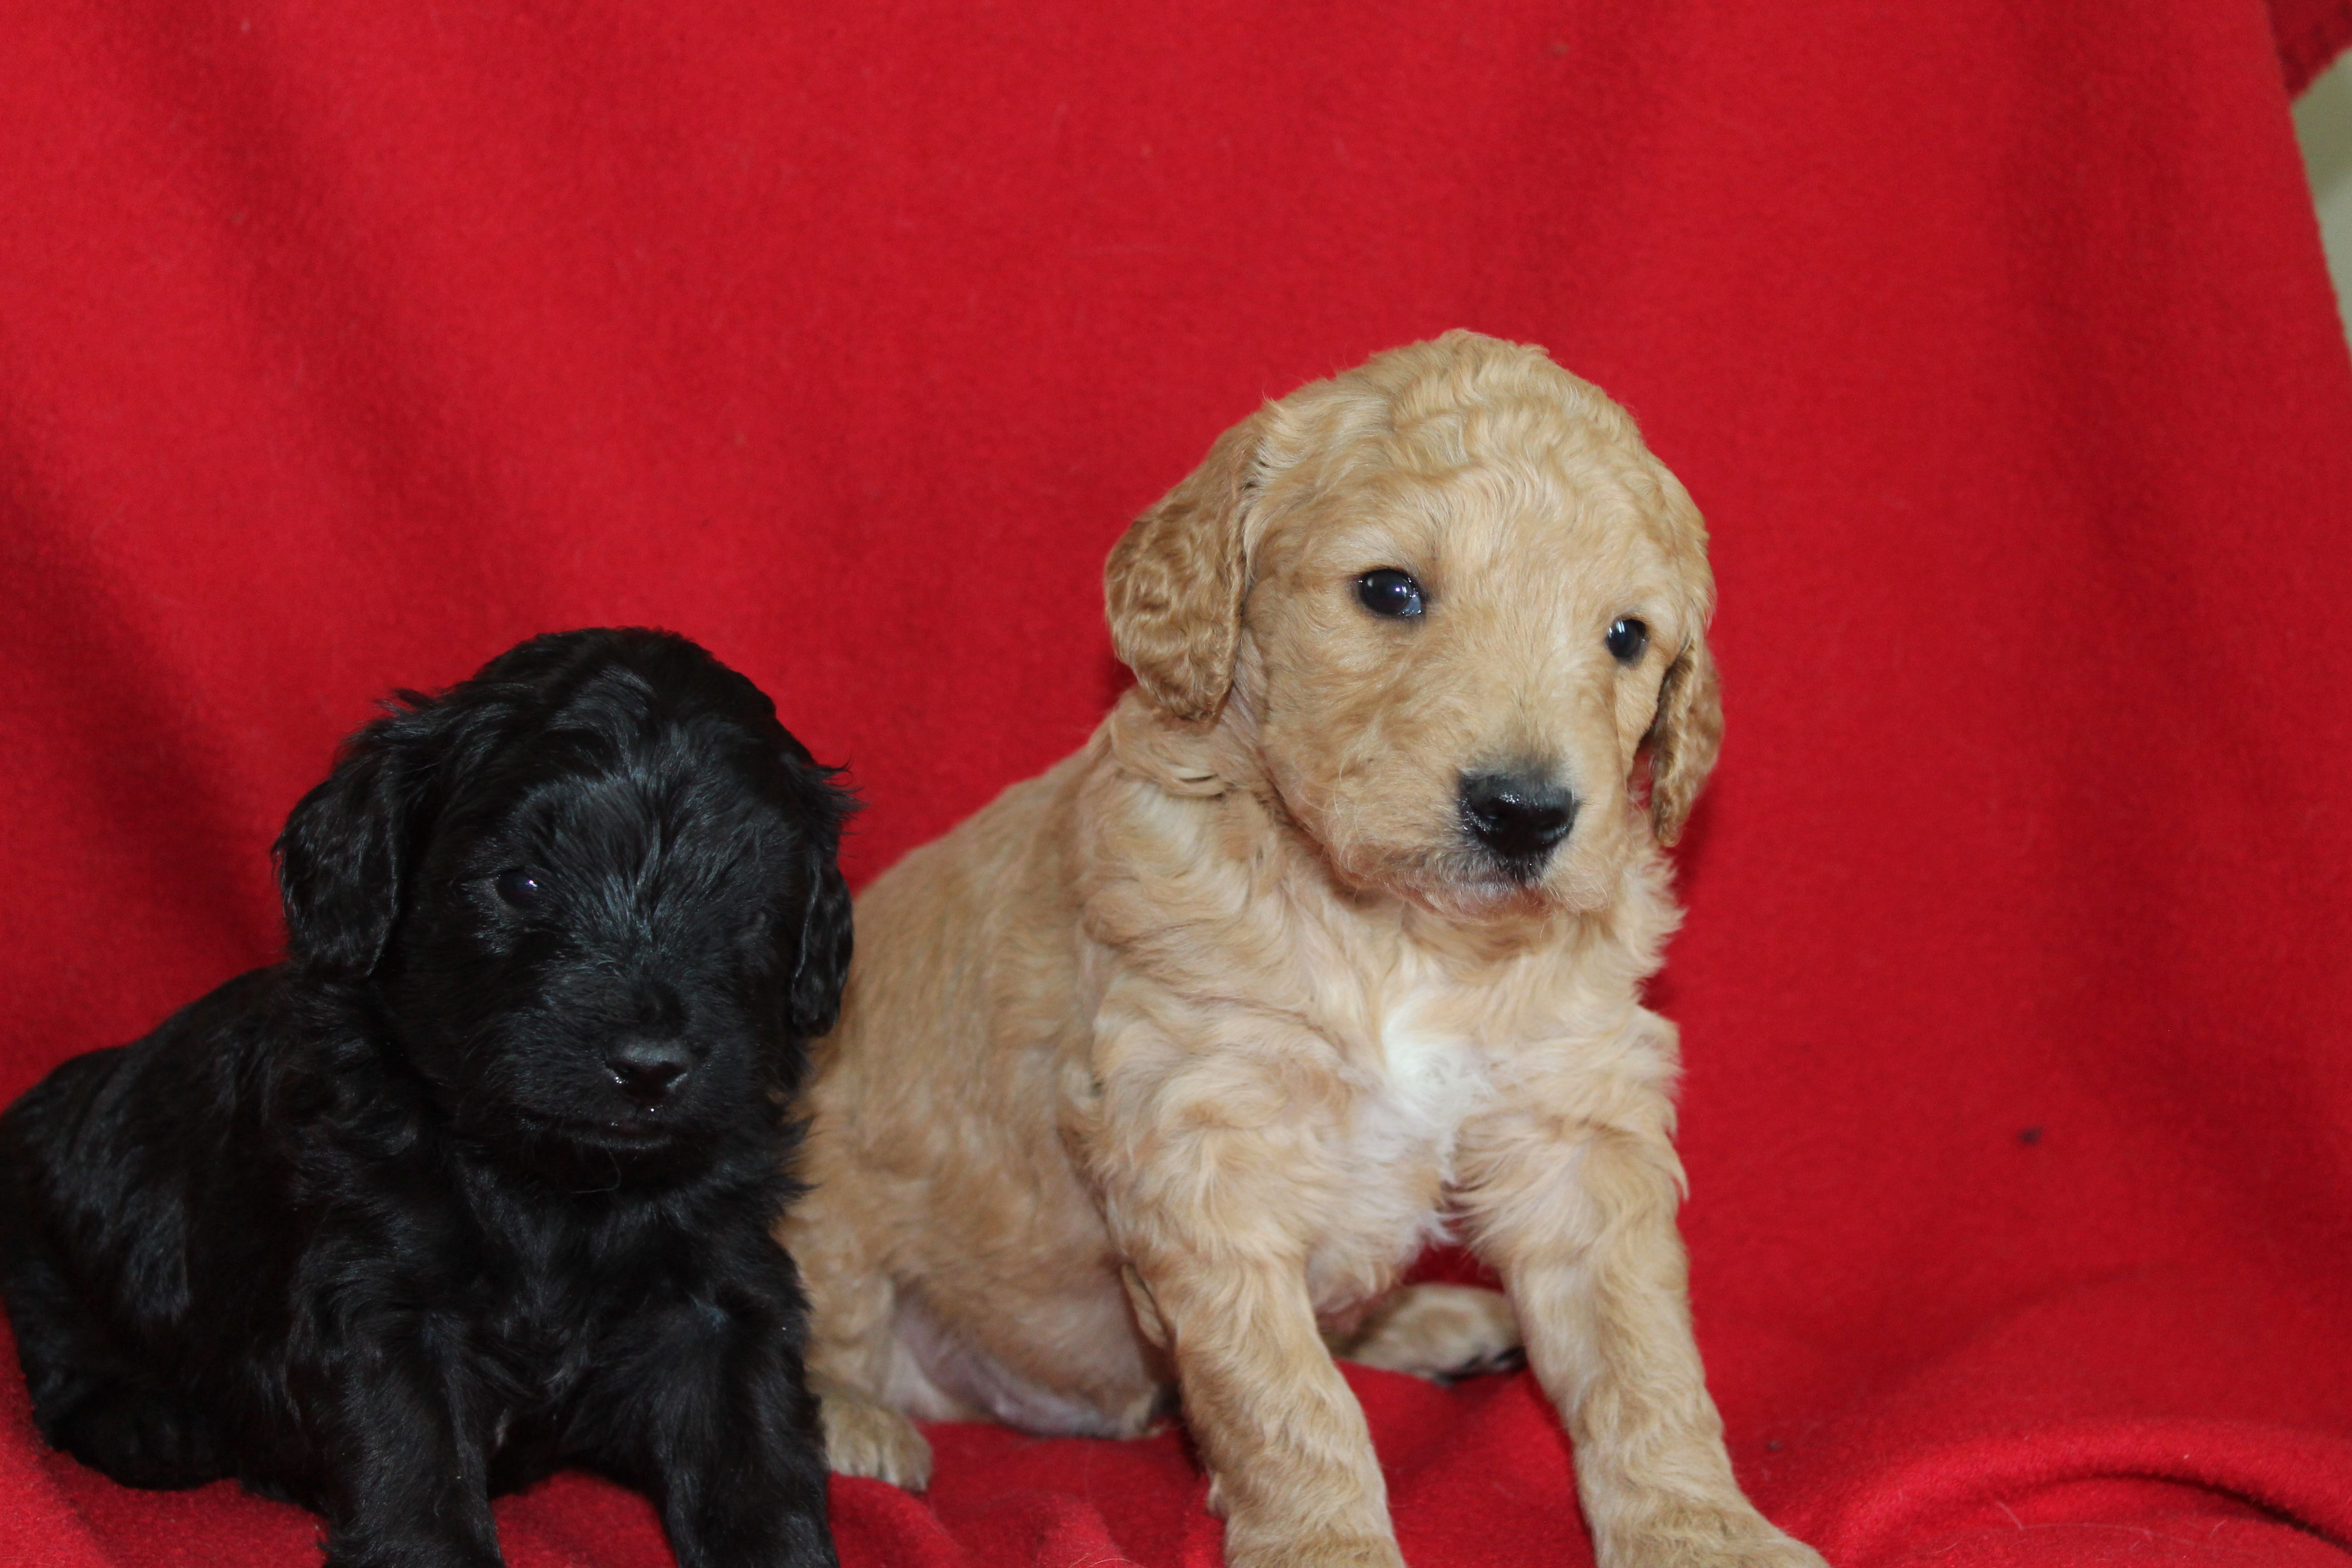 Day 28 - male mini goldendoodles smaller, black with tiny